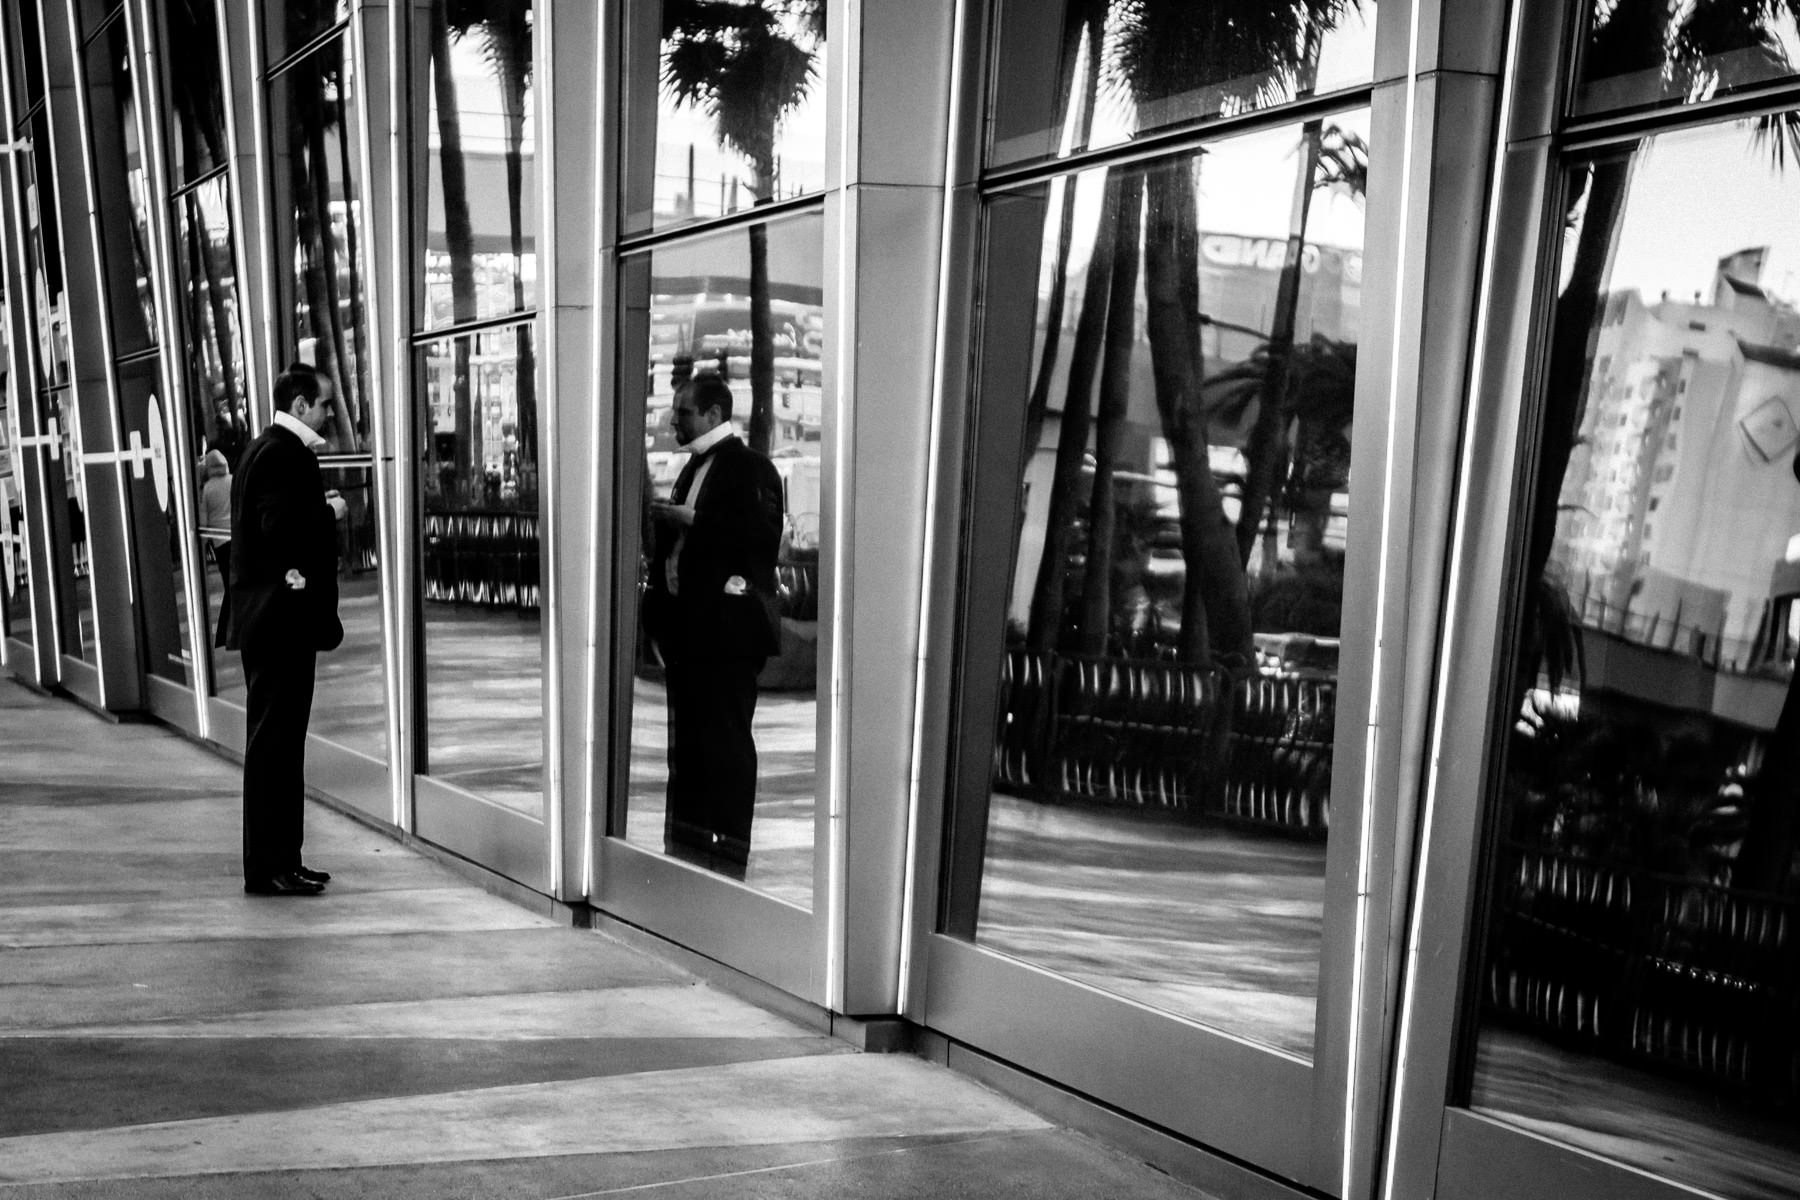 Pausing to use windows as a mirror to tie his necktie, this subject was spotted in front of the Cosmopolitan of Las Vegas.